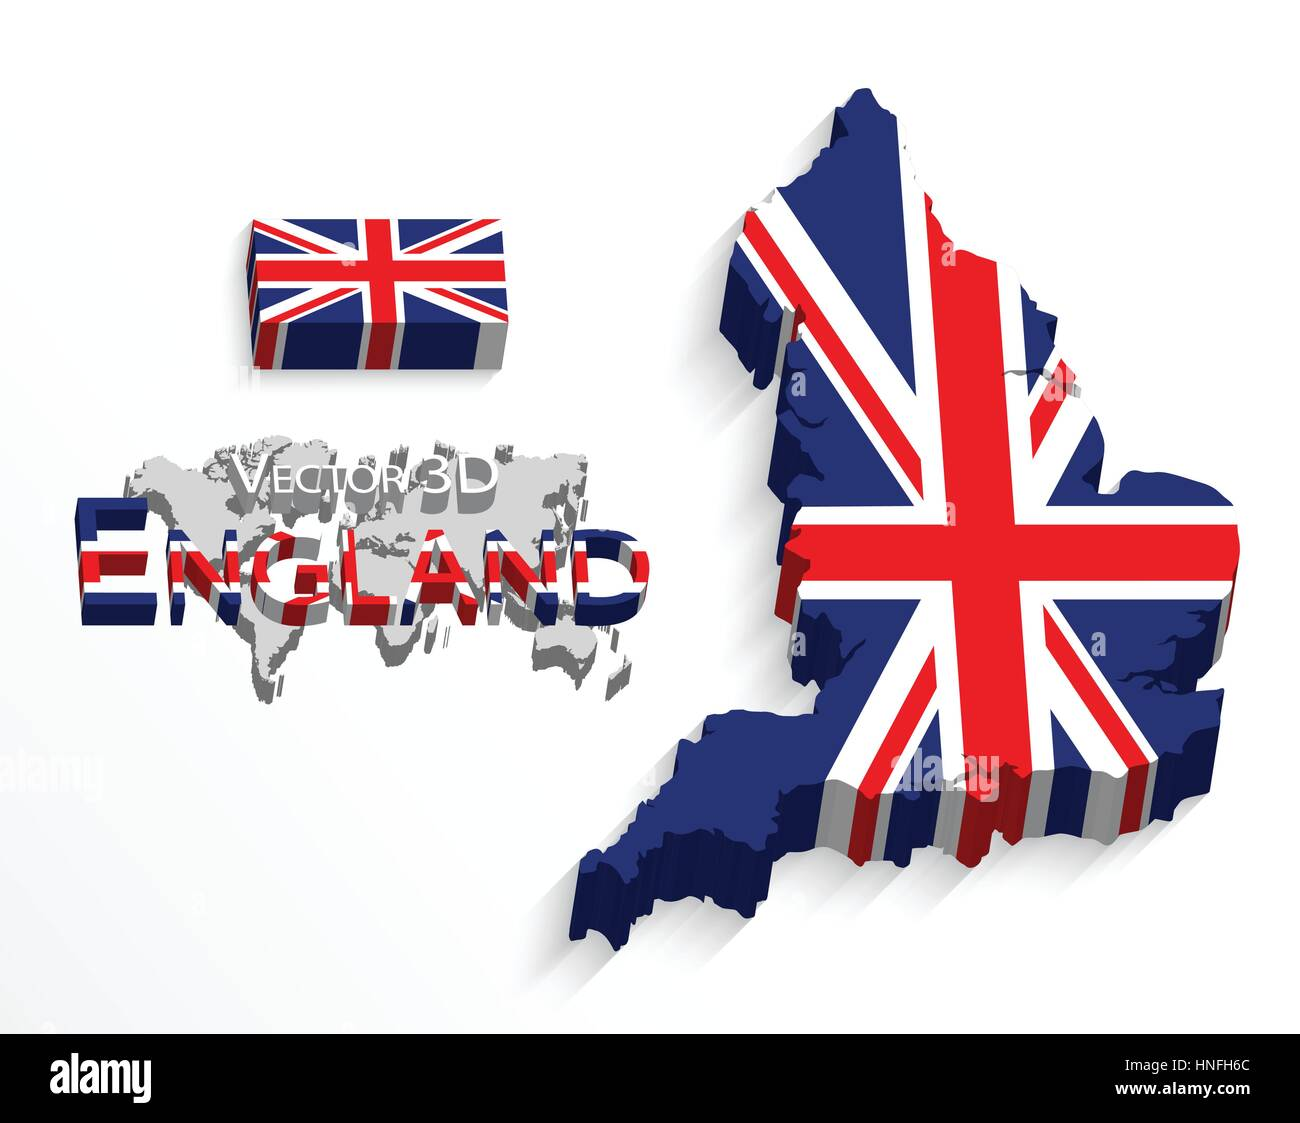 england 3d flag and map united kingdom of great britain combine flag and map